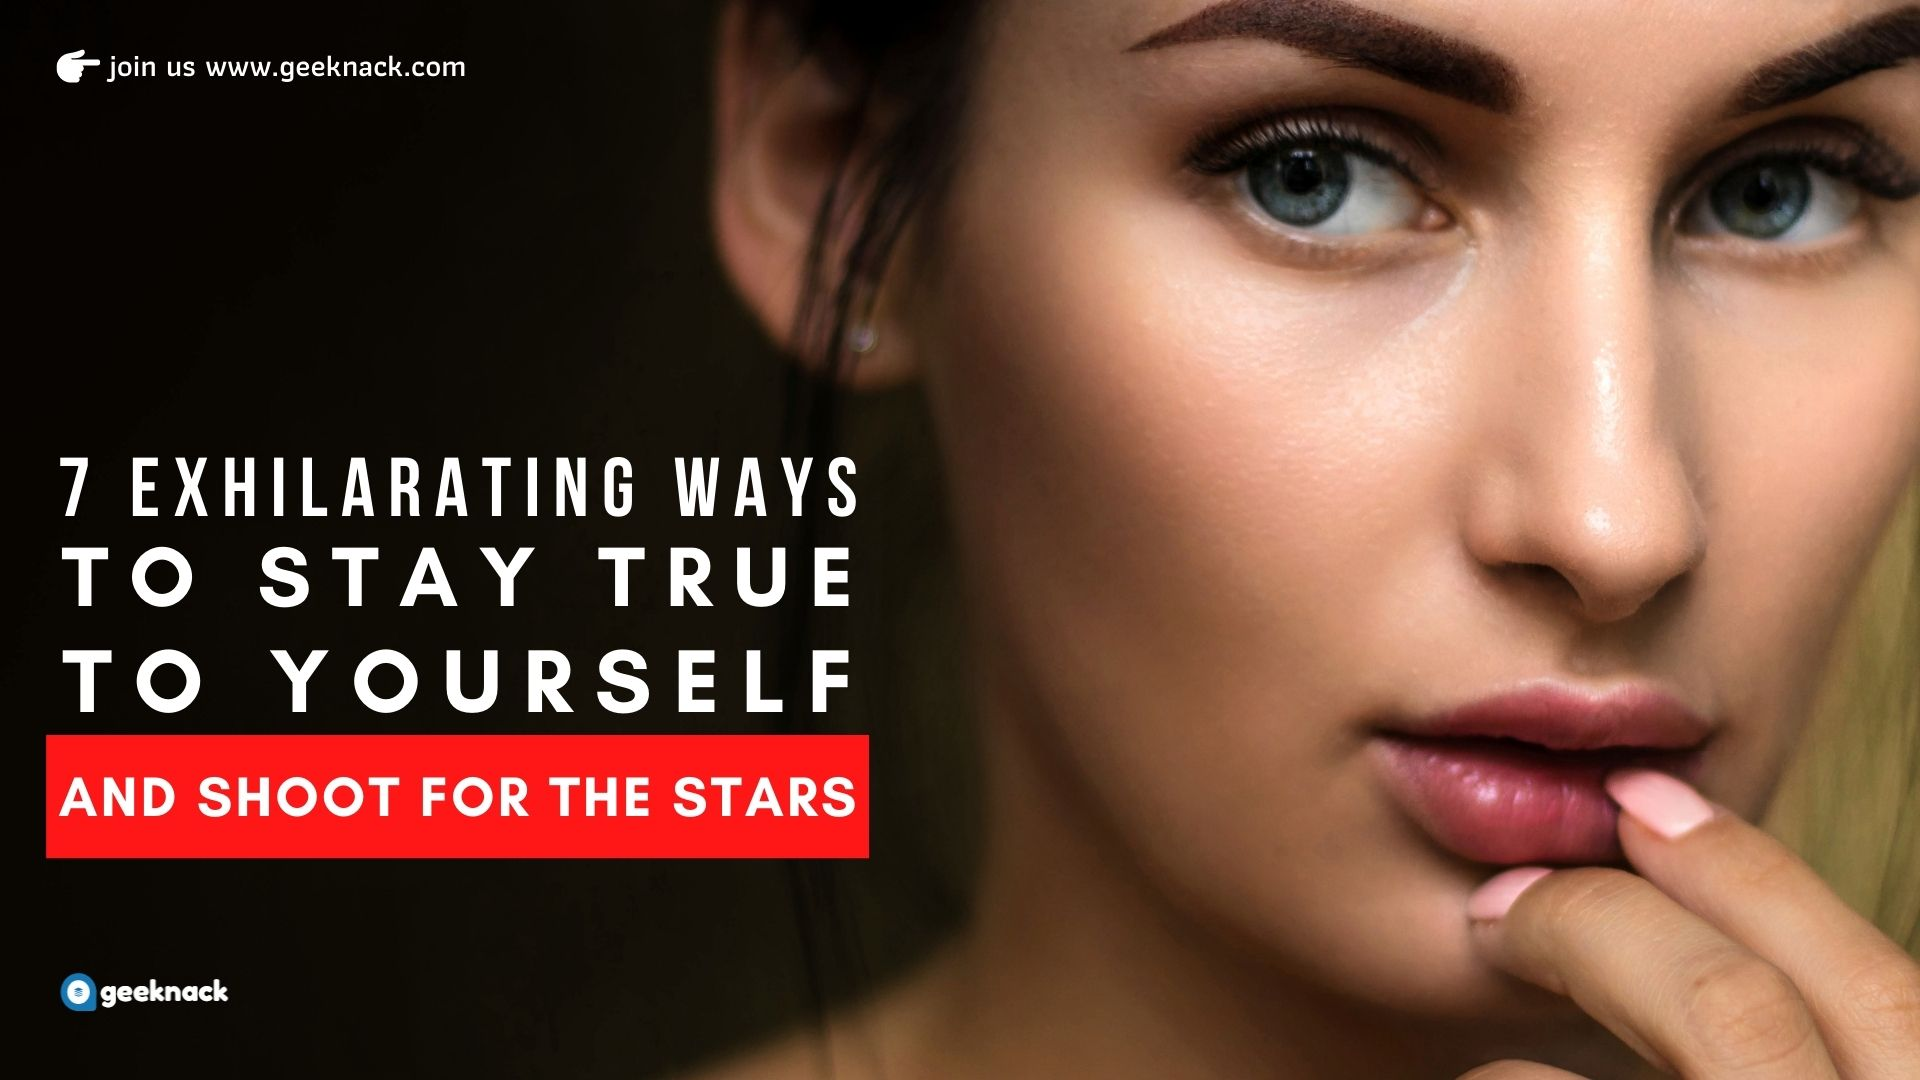 Seven Exhilarating Ways To Stay True To Yourself And Shoot For The Stars